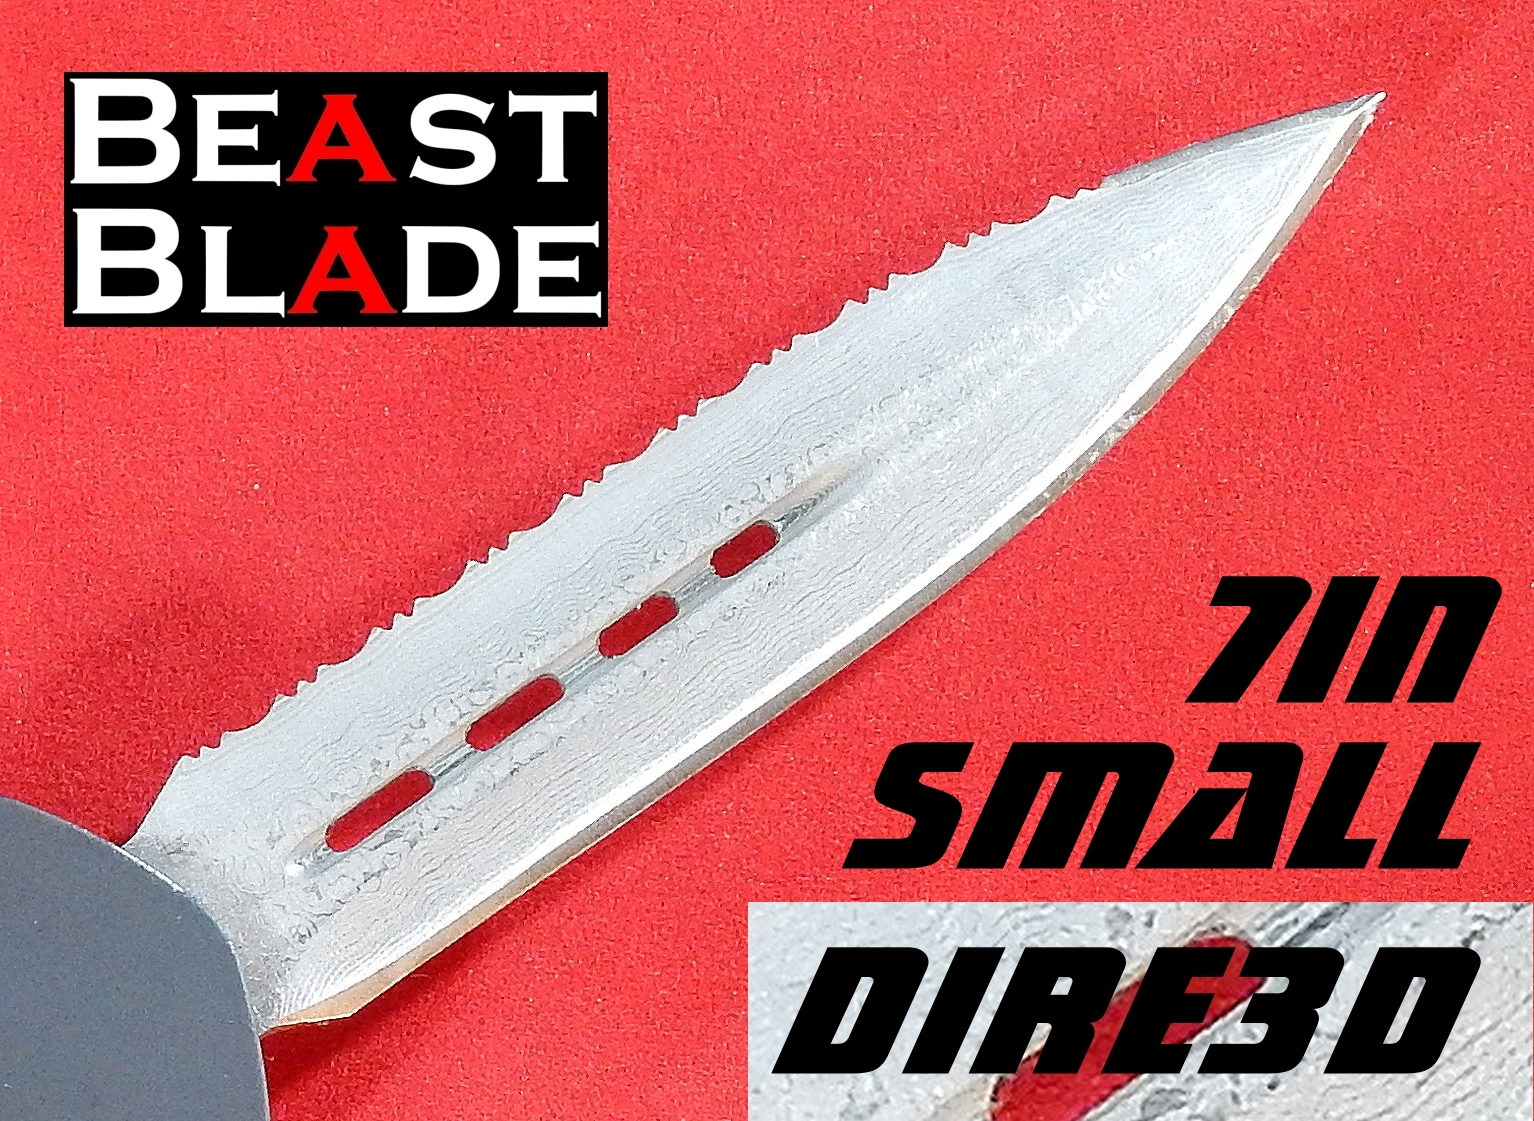 7 inch Damascus Dagger, Double Edge, Straight & Serrated Edges